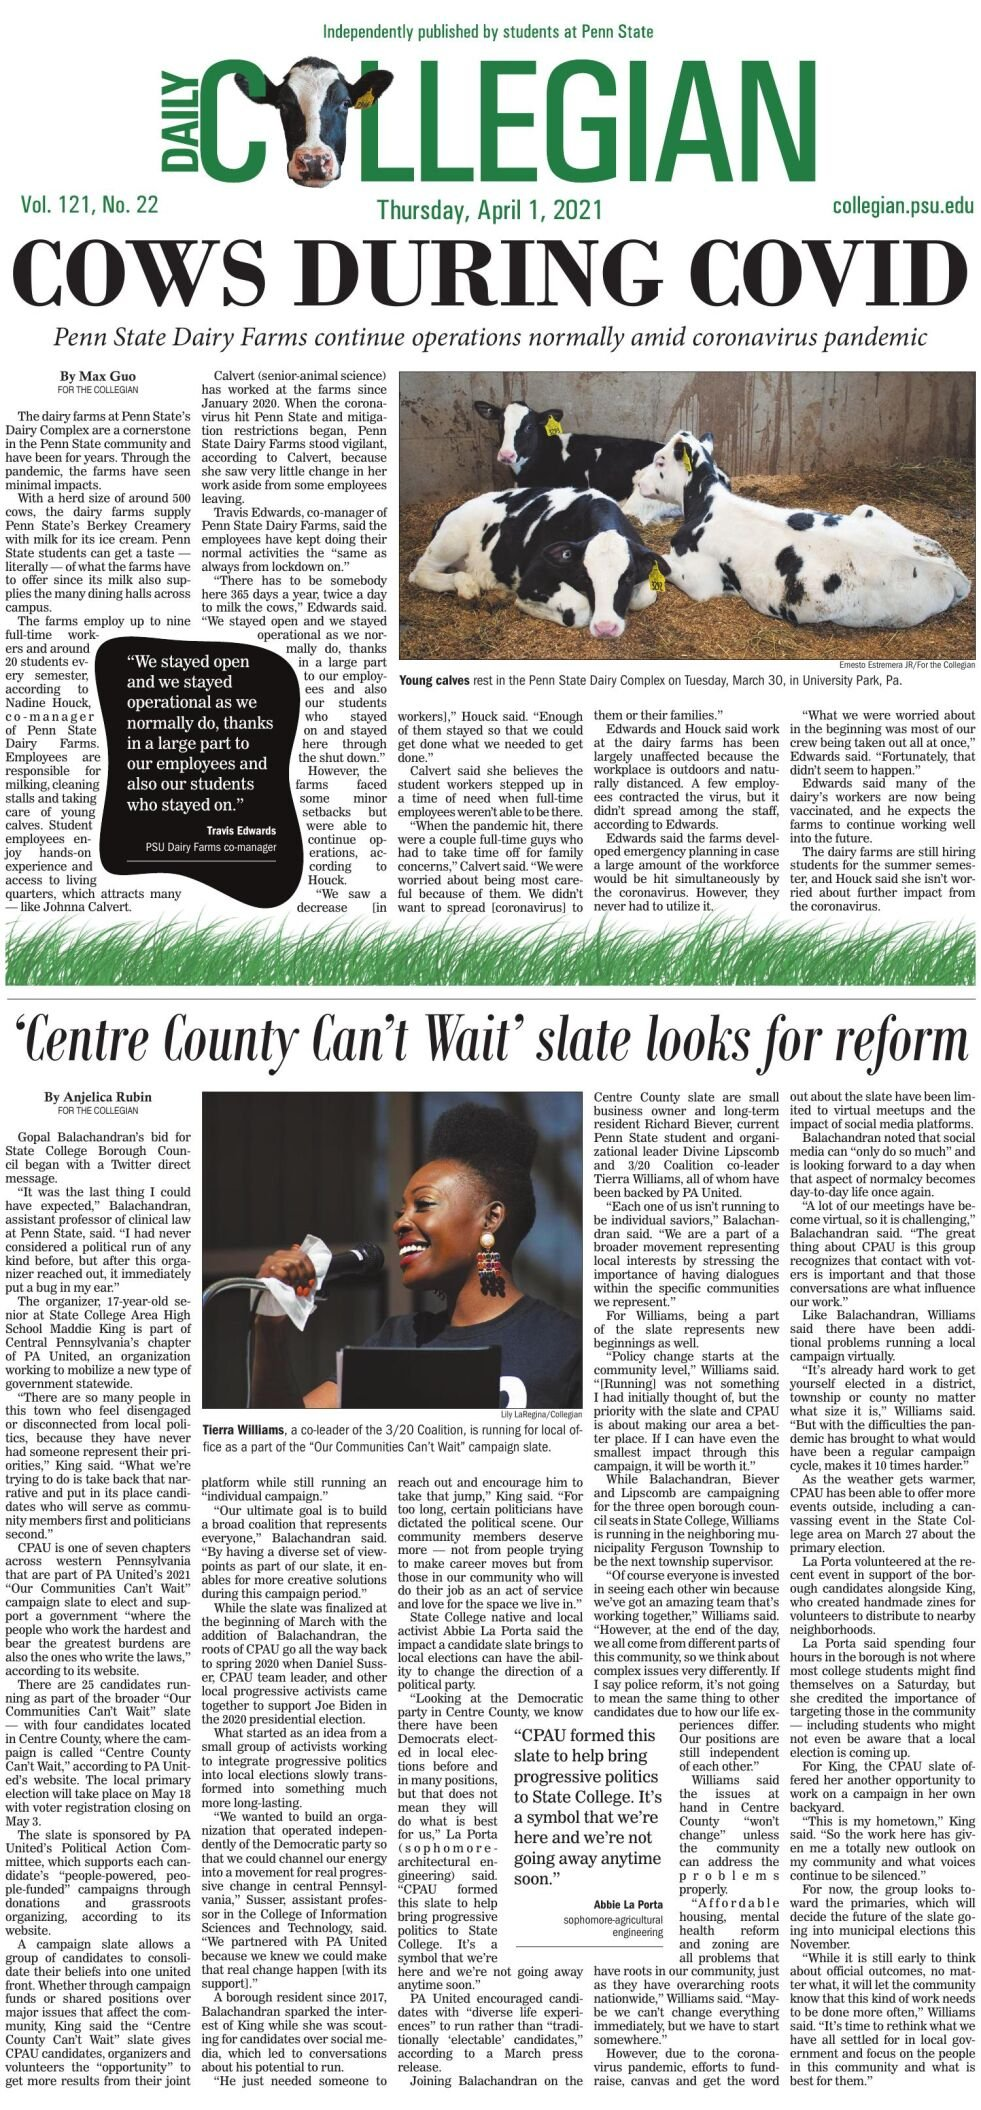 The Daily Collegian for April 1, 2021